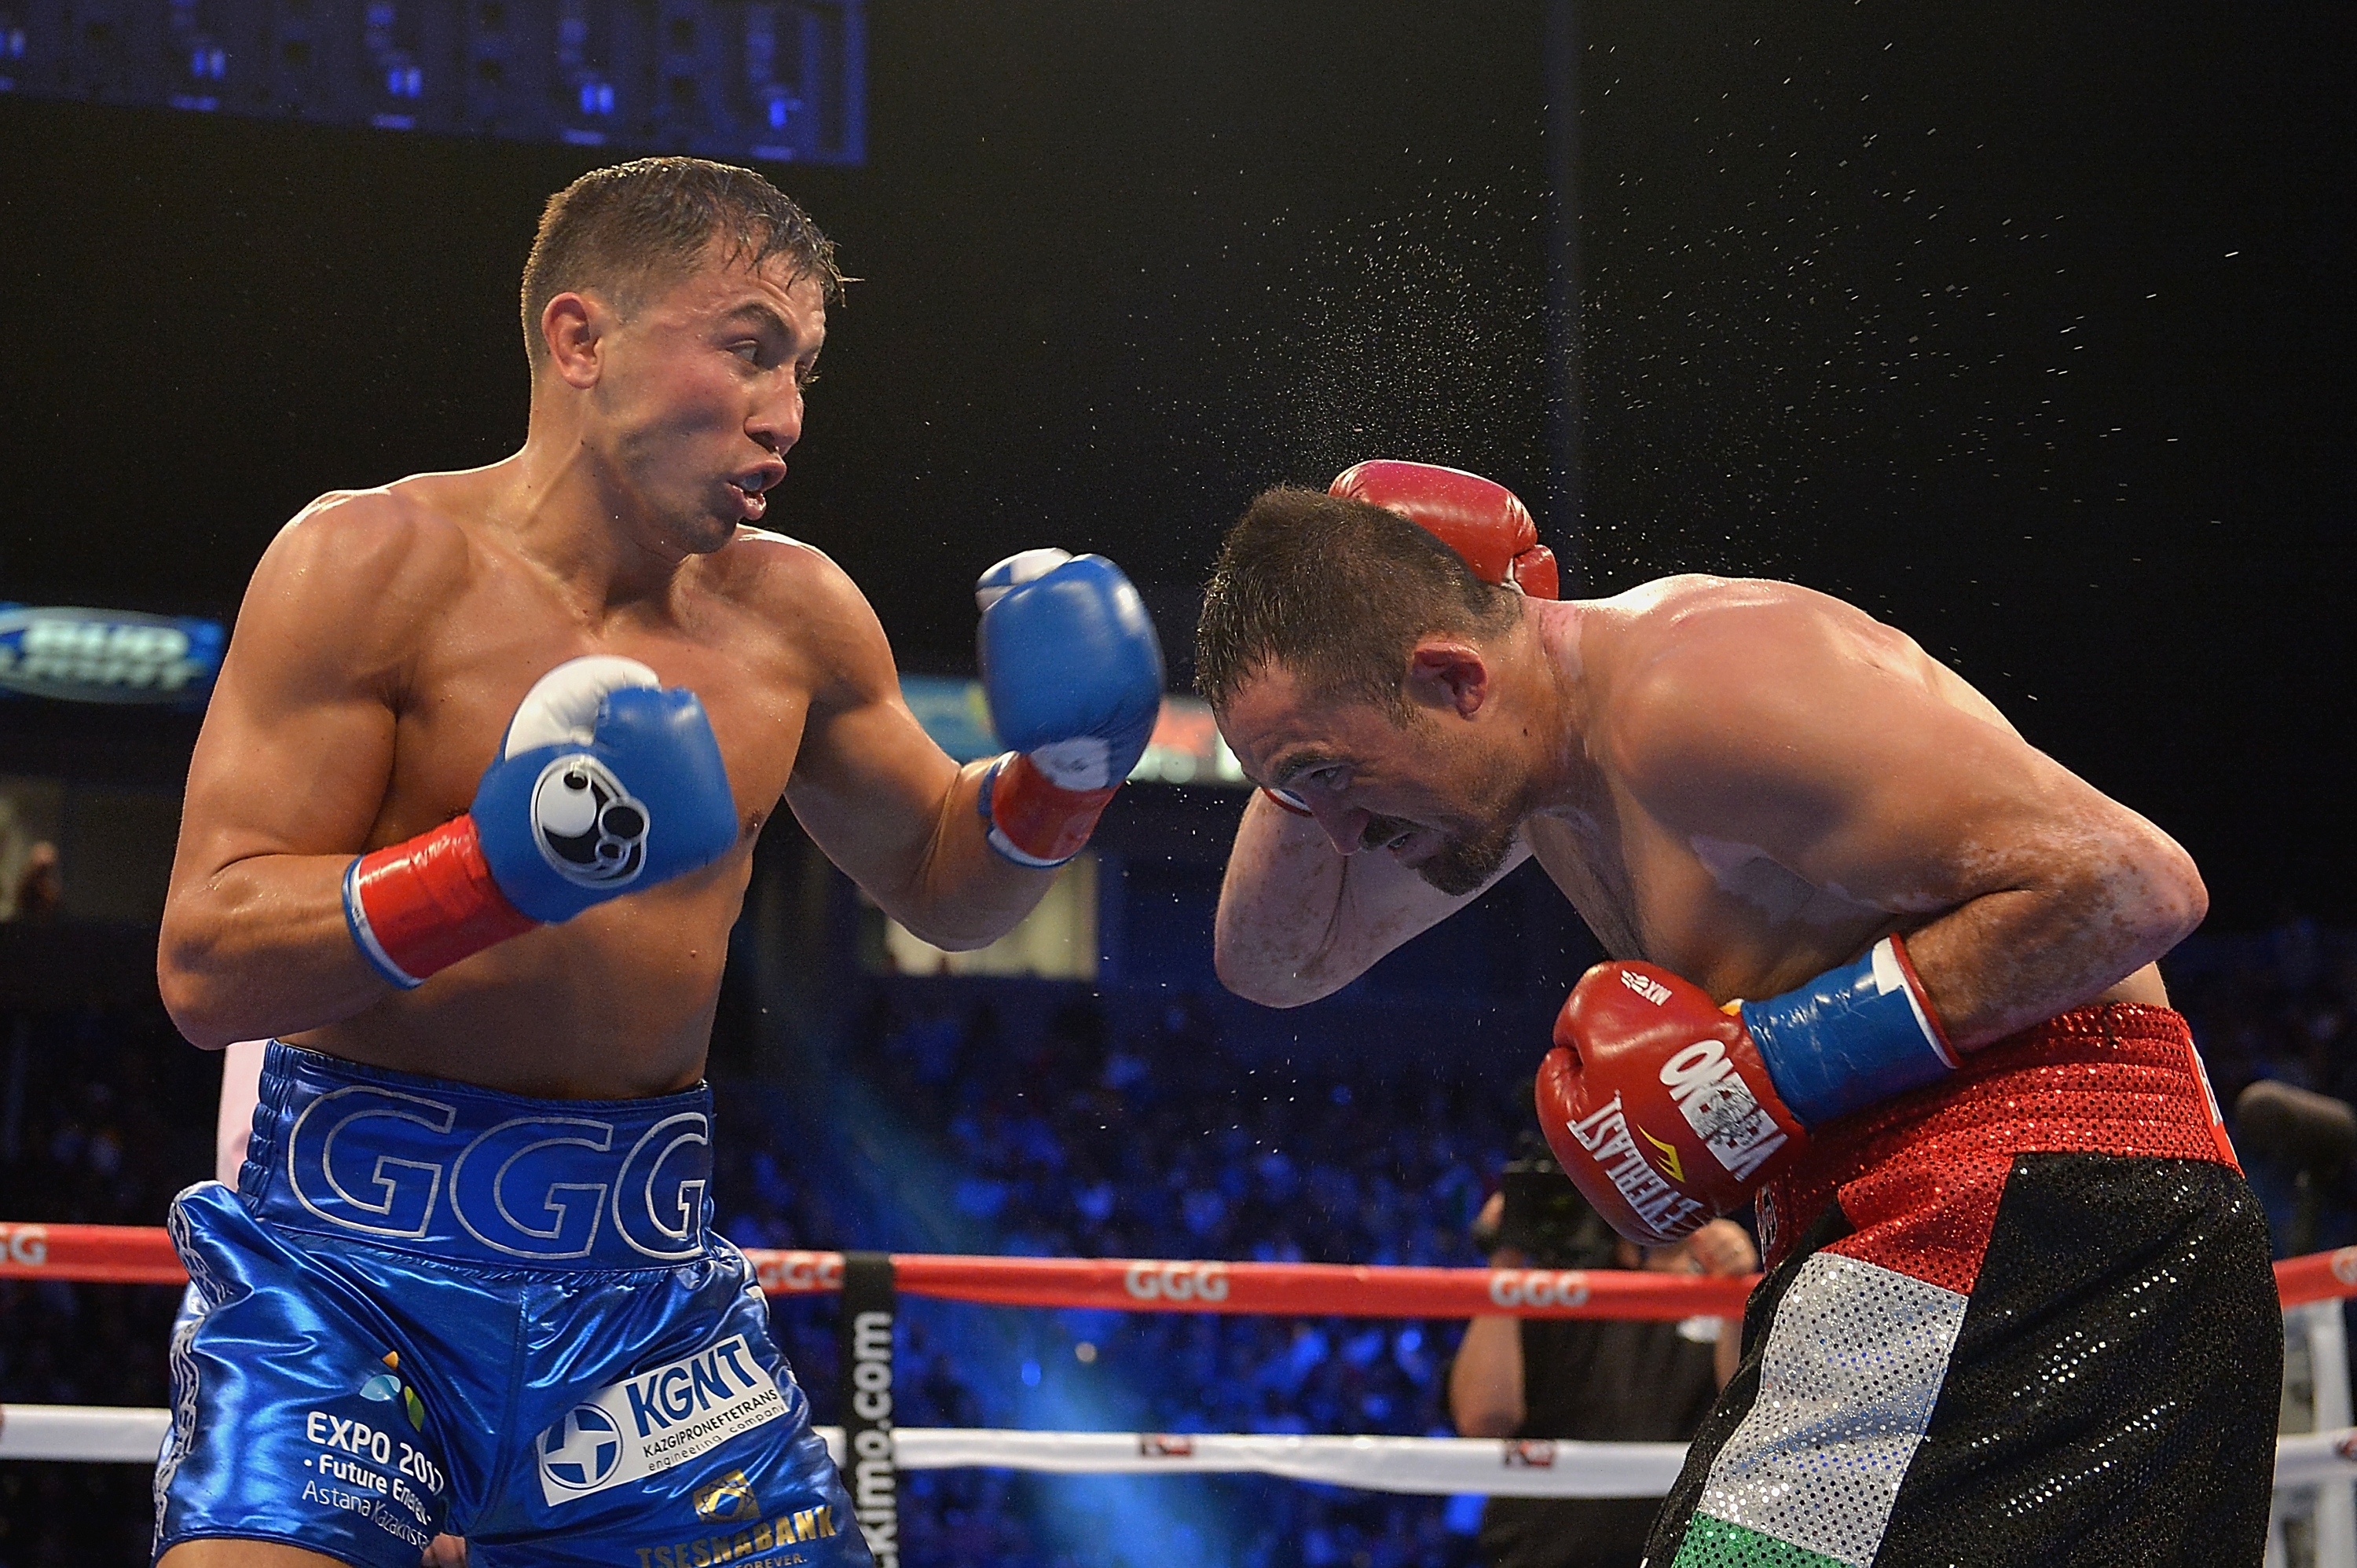 (Gennady Gennadyevich Golovkin of Kazakhstan throws a punch against Marco Antonio Rubio of Mexico in the second round the WBC Interim Middleweight Title bout at StubHub Center on October 18, 2014 in Los Angeles, California, photo: Jonathan Moore/Getty Images)